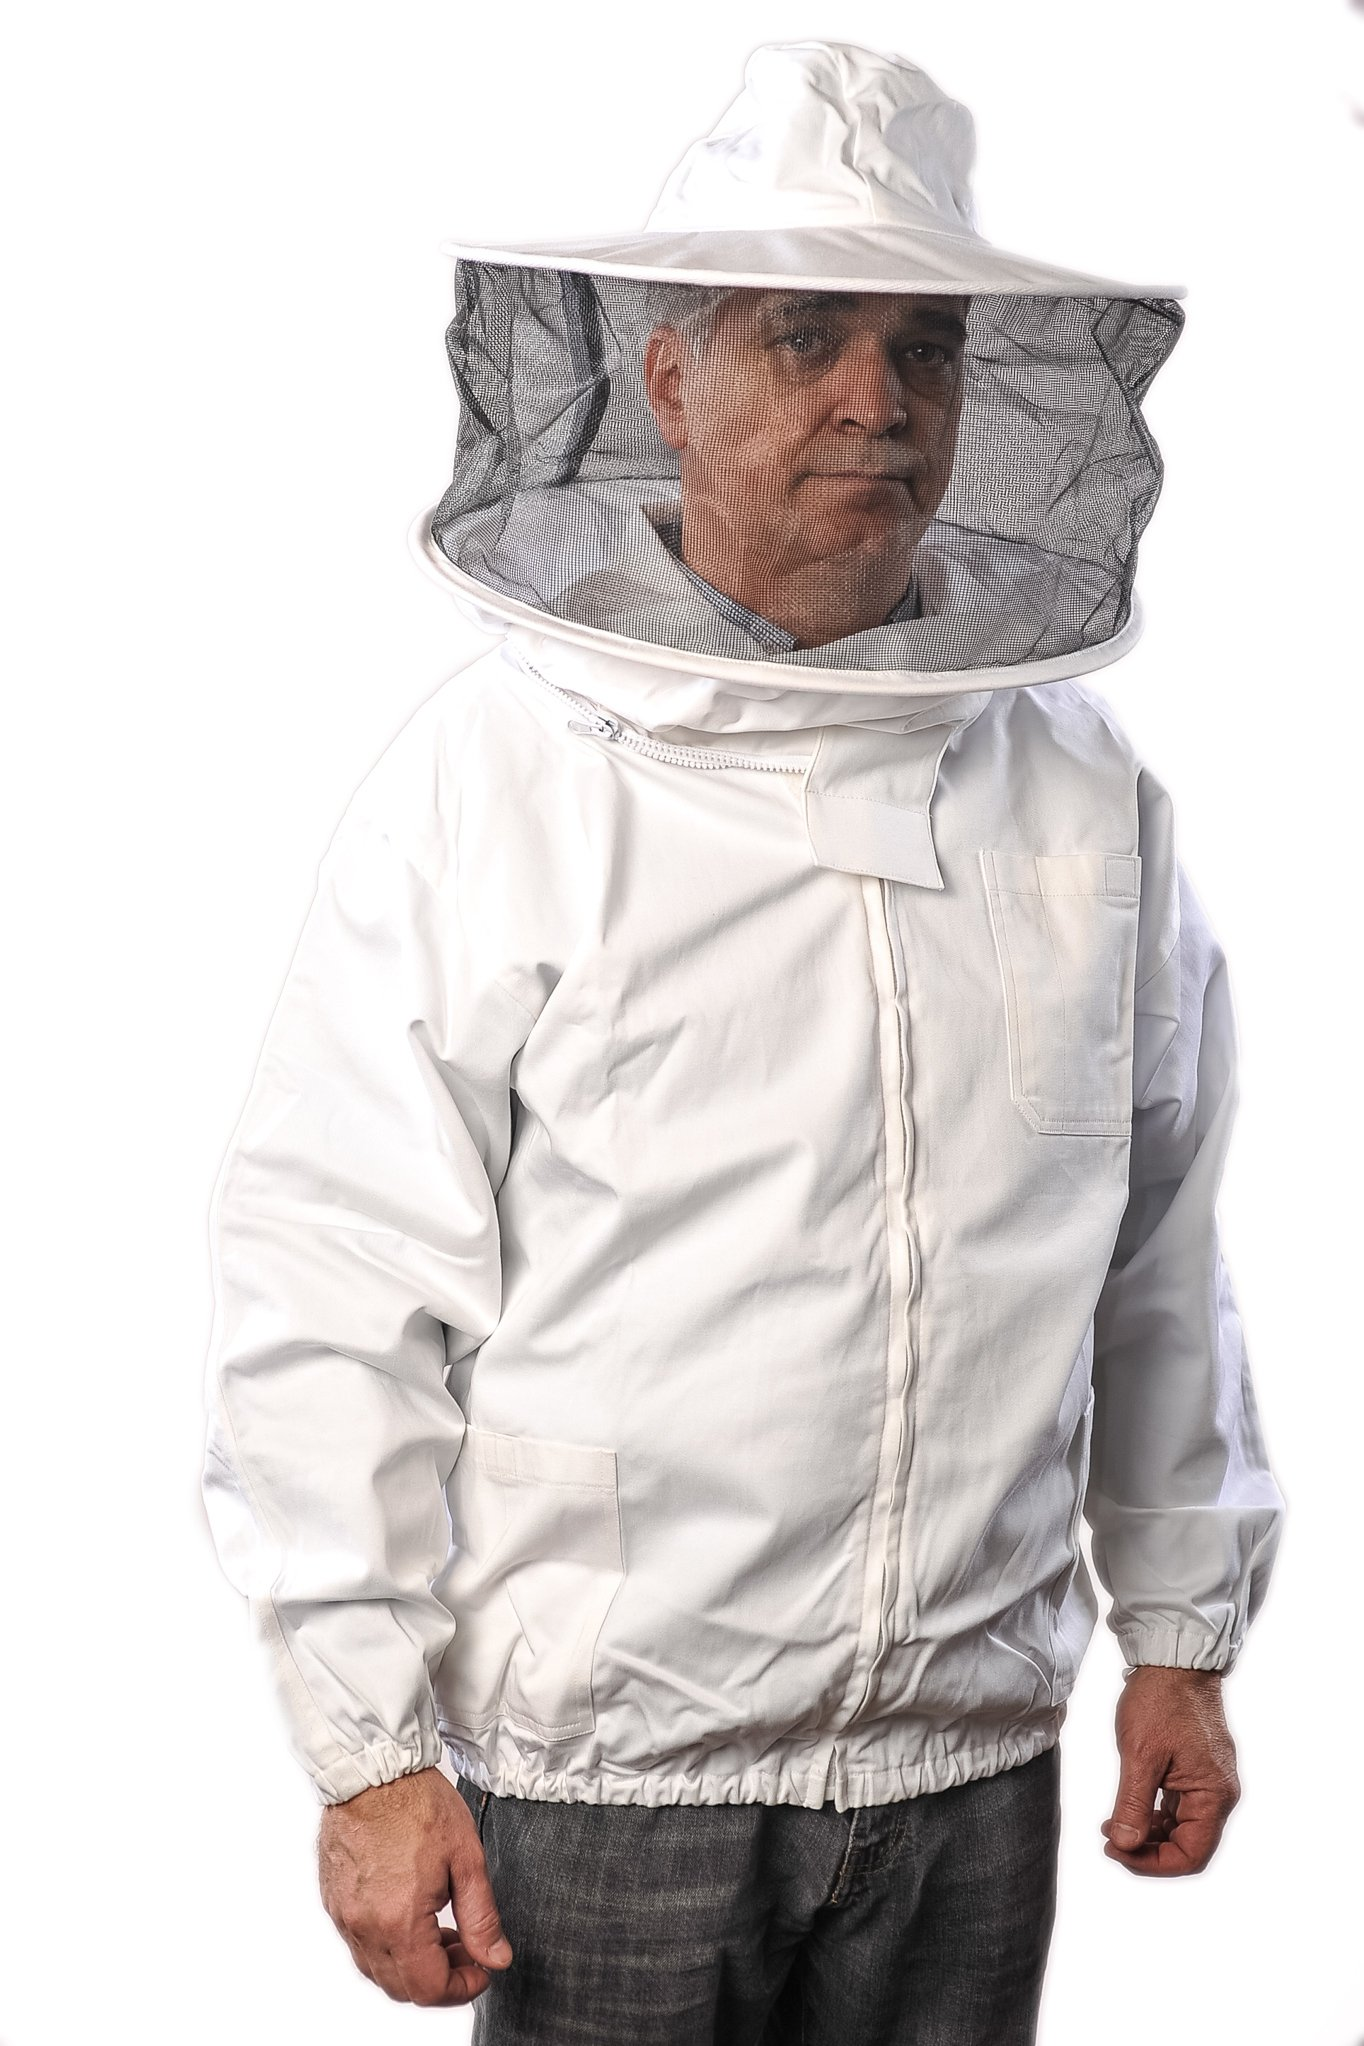 Forest Beekeeping Jacket with Round Veil Hood, Professional Premium Beekeeper Jackets YKK Brass Zippers (XL) by FOREST BEEKEEPING SUPPLY